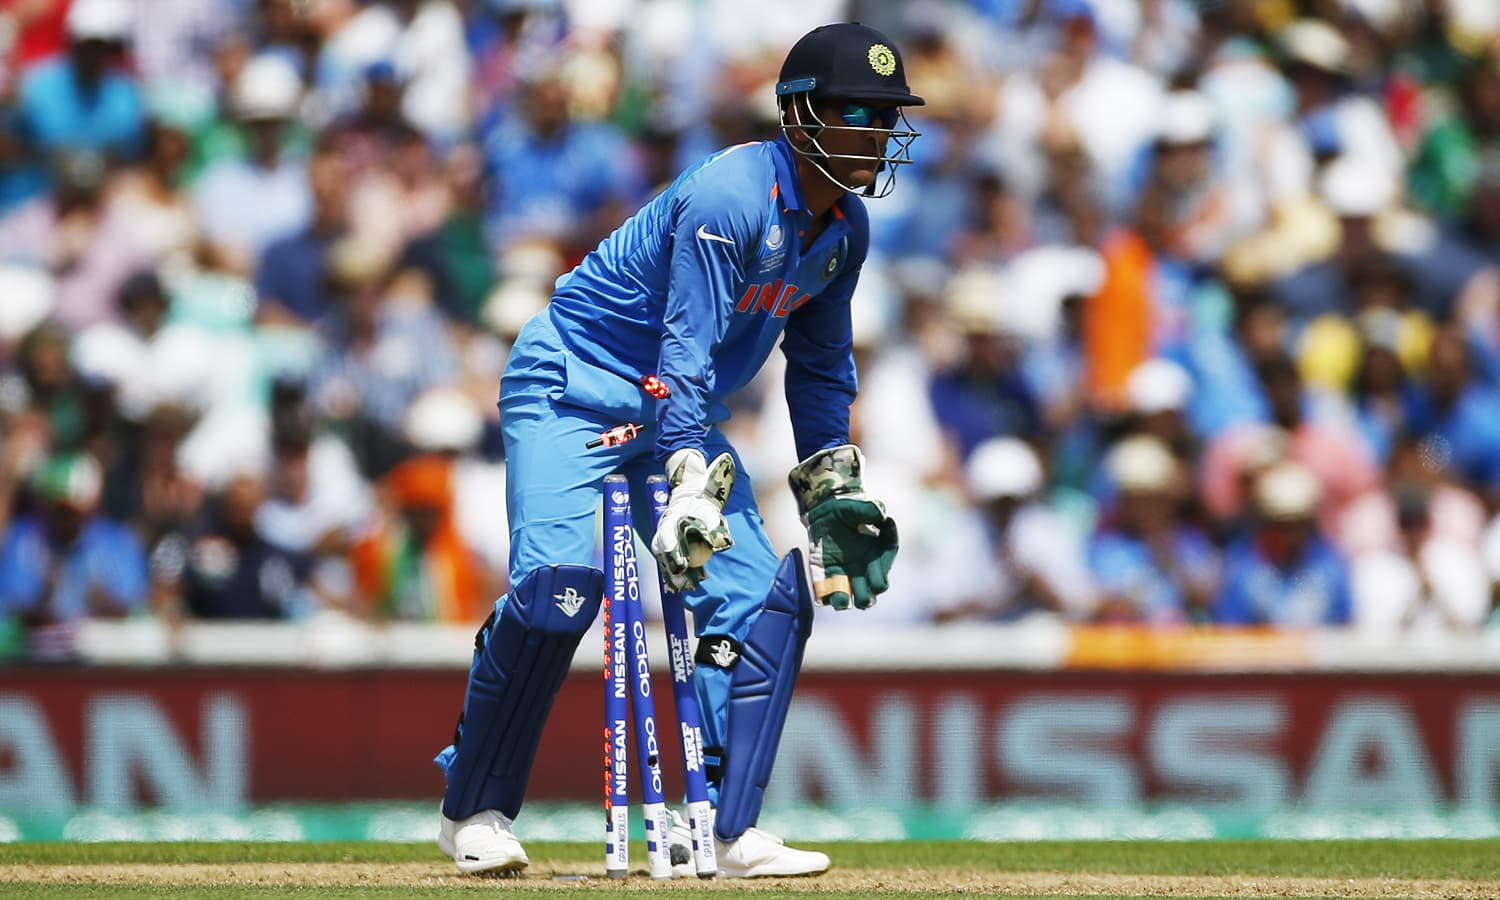 MS Dhoni runs out Azhar Ali after the batting partners miscommunicated signals.─Reuters